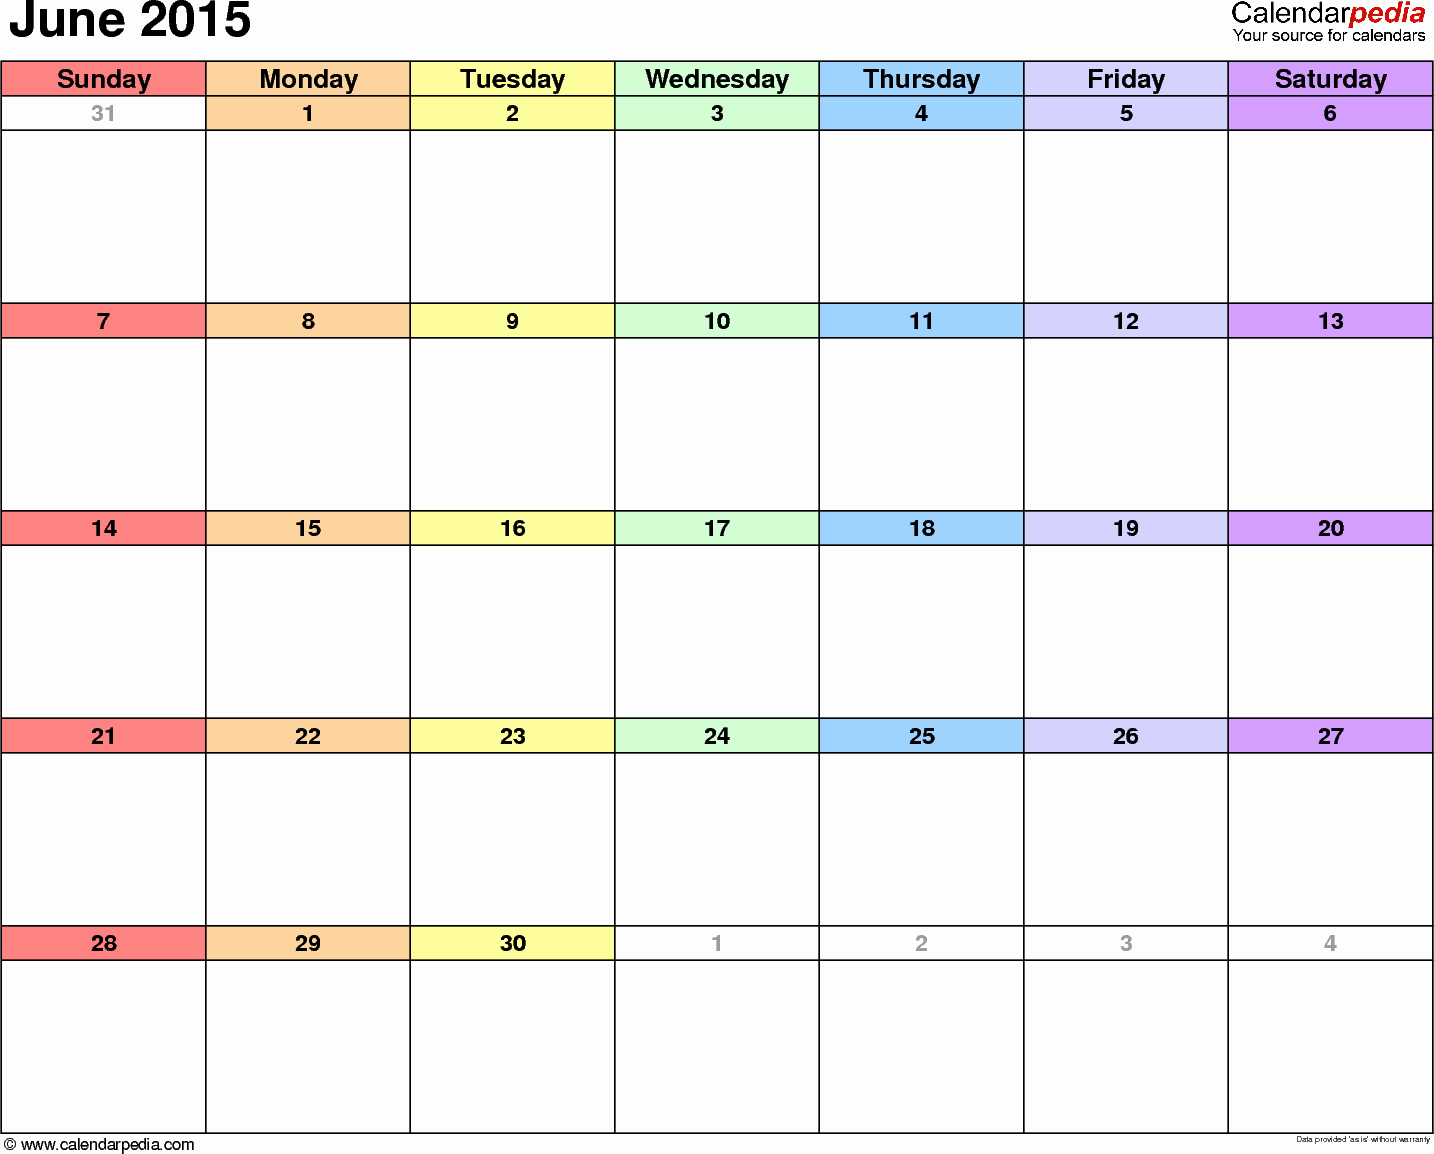 Calendar Template for June 2015 Lovely June 2015 Calendars for Word Excel & Pdf